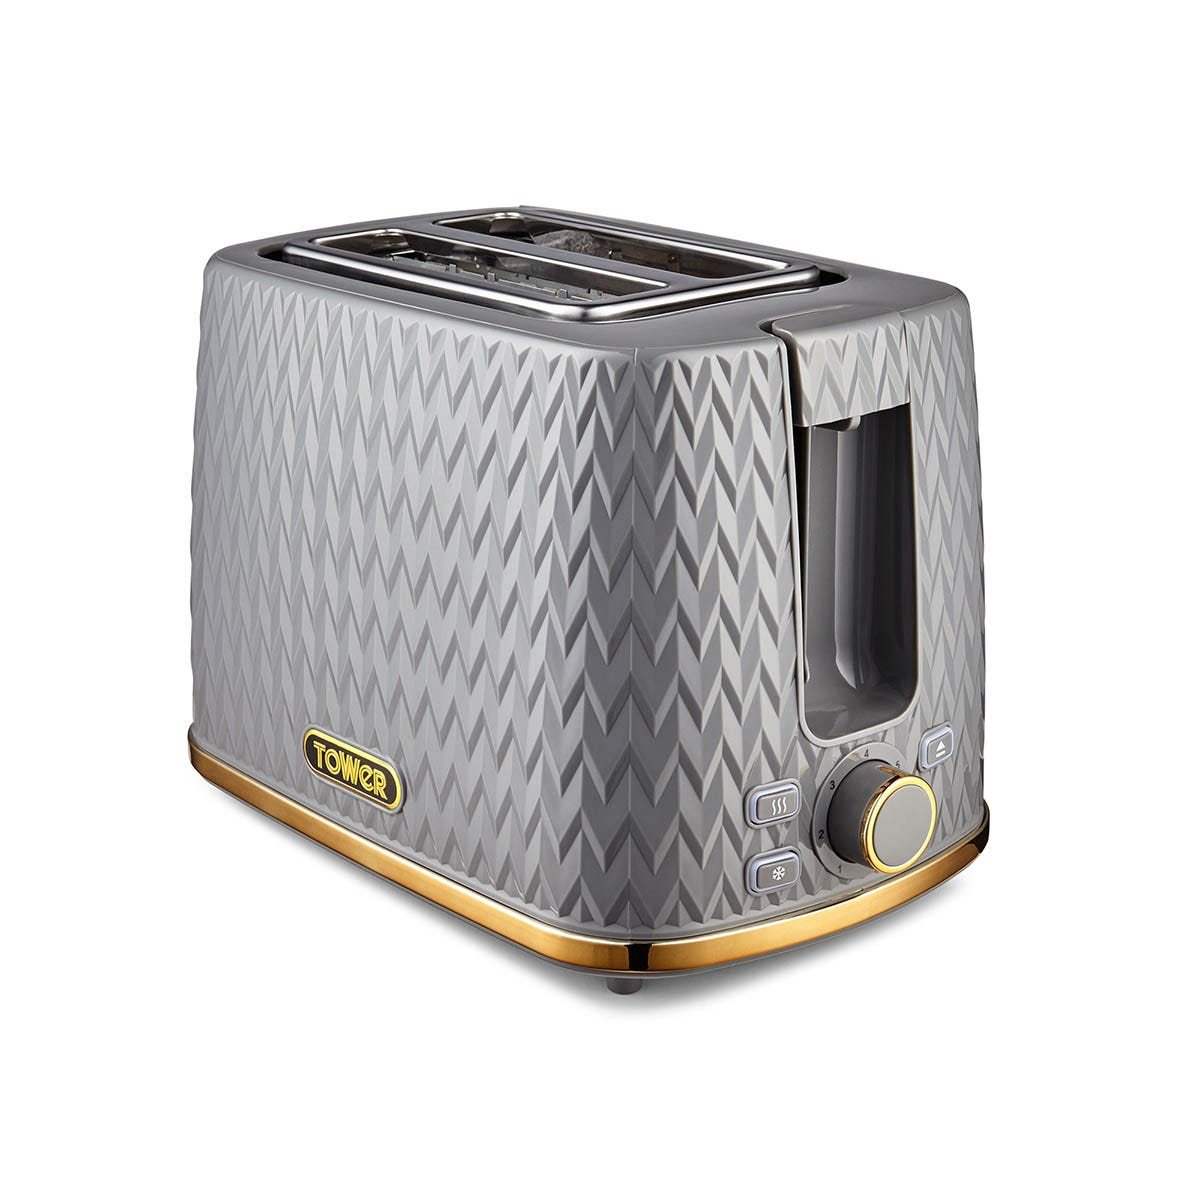 Tower T20054GRY Empire 2 Slice Toaster - Grey